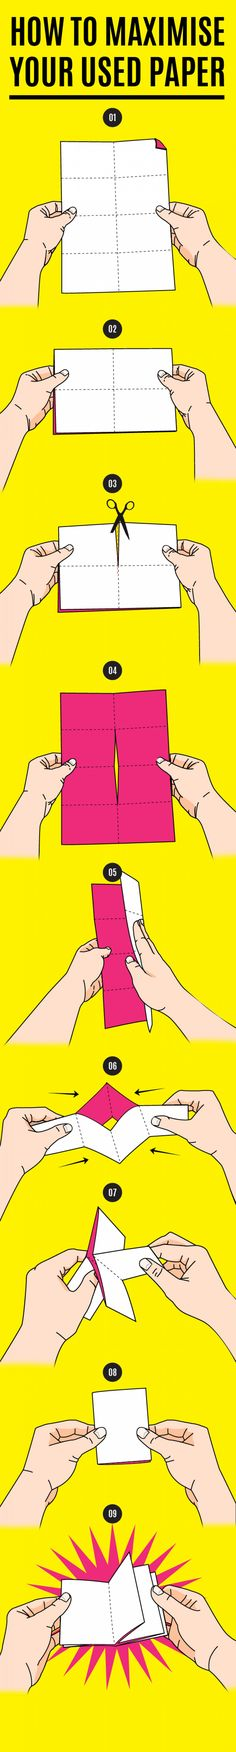 Make a mini notebook from any sheet of paper! #Infographic Saddle stitch binding 간단한 중철 제본이 되네요